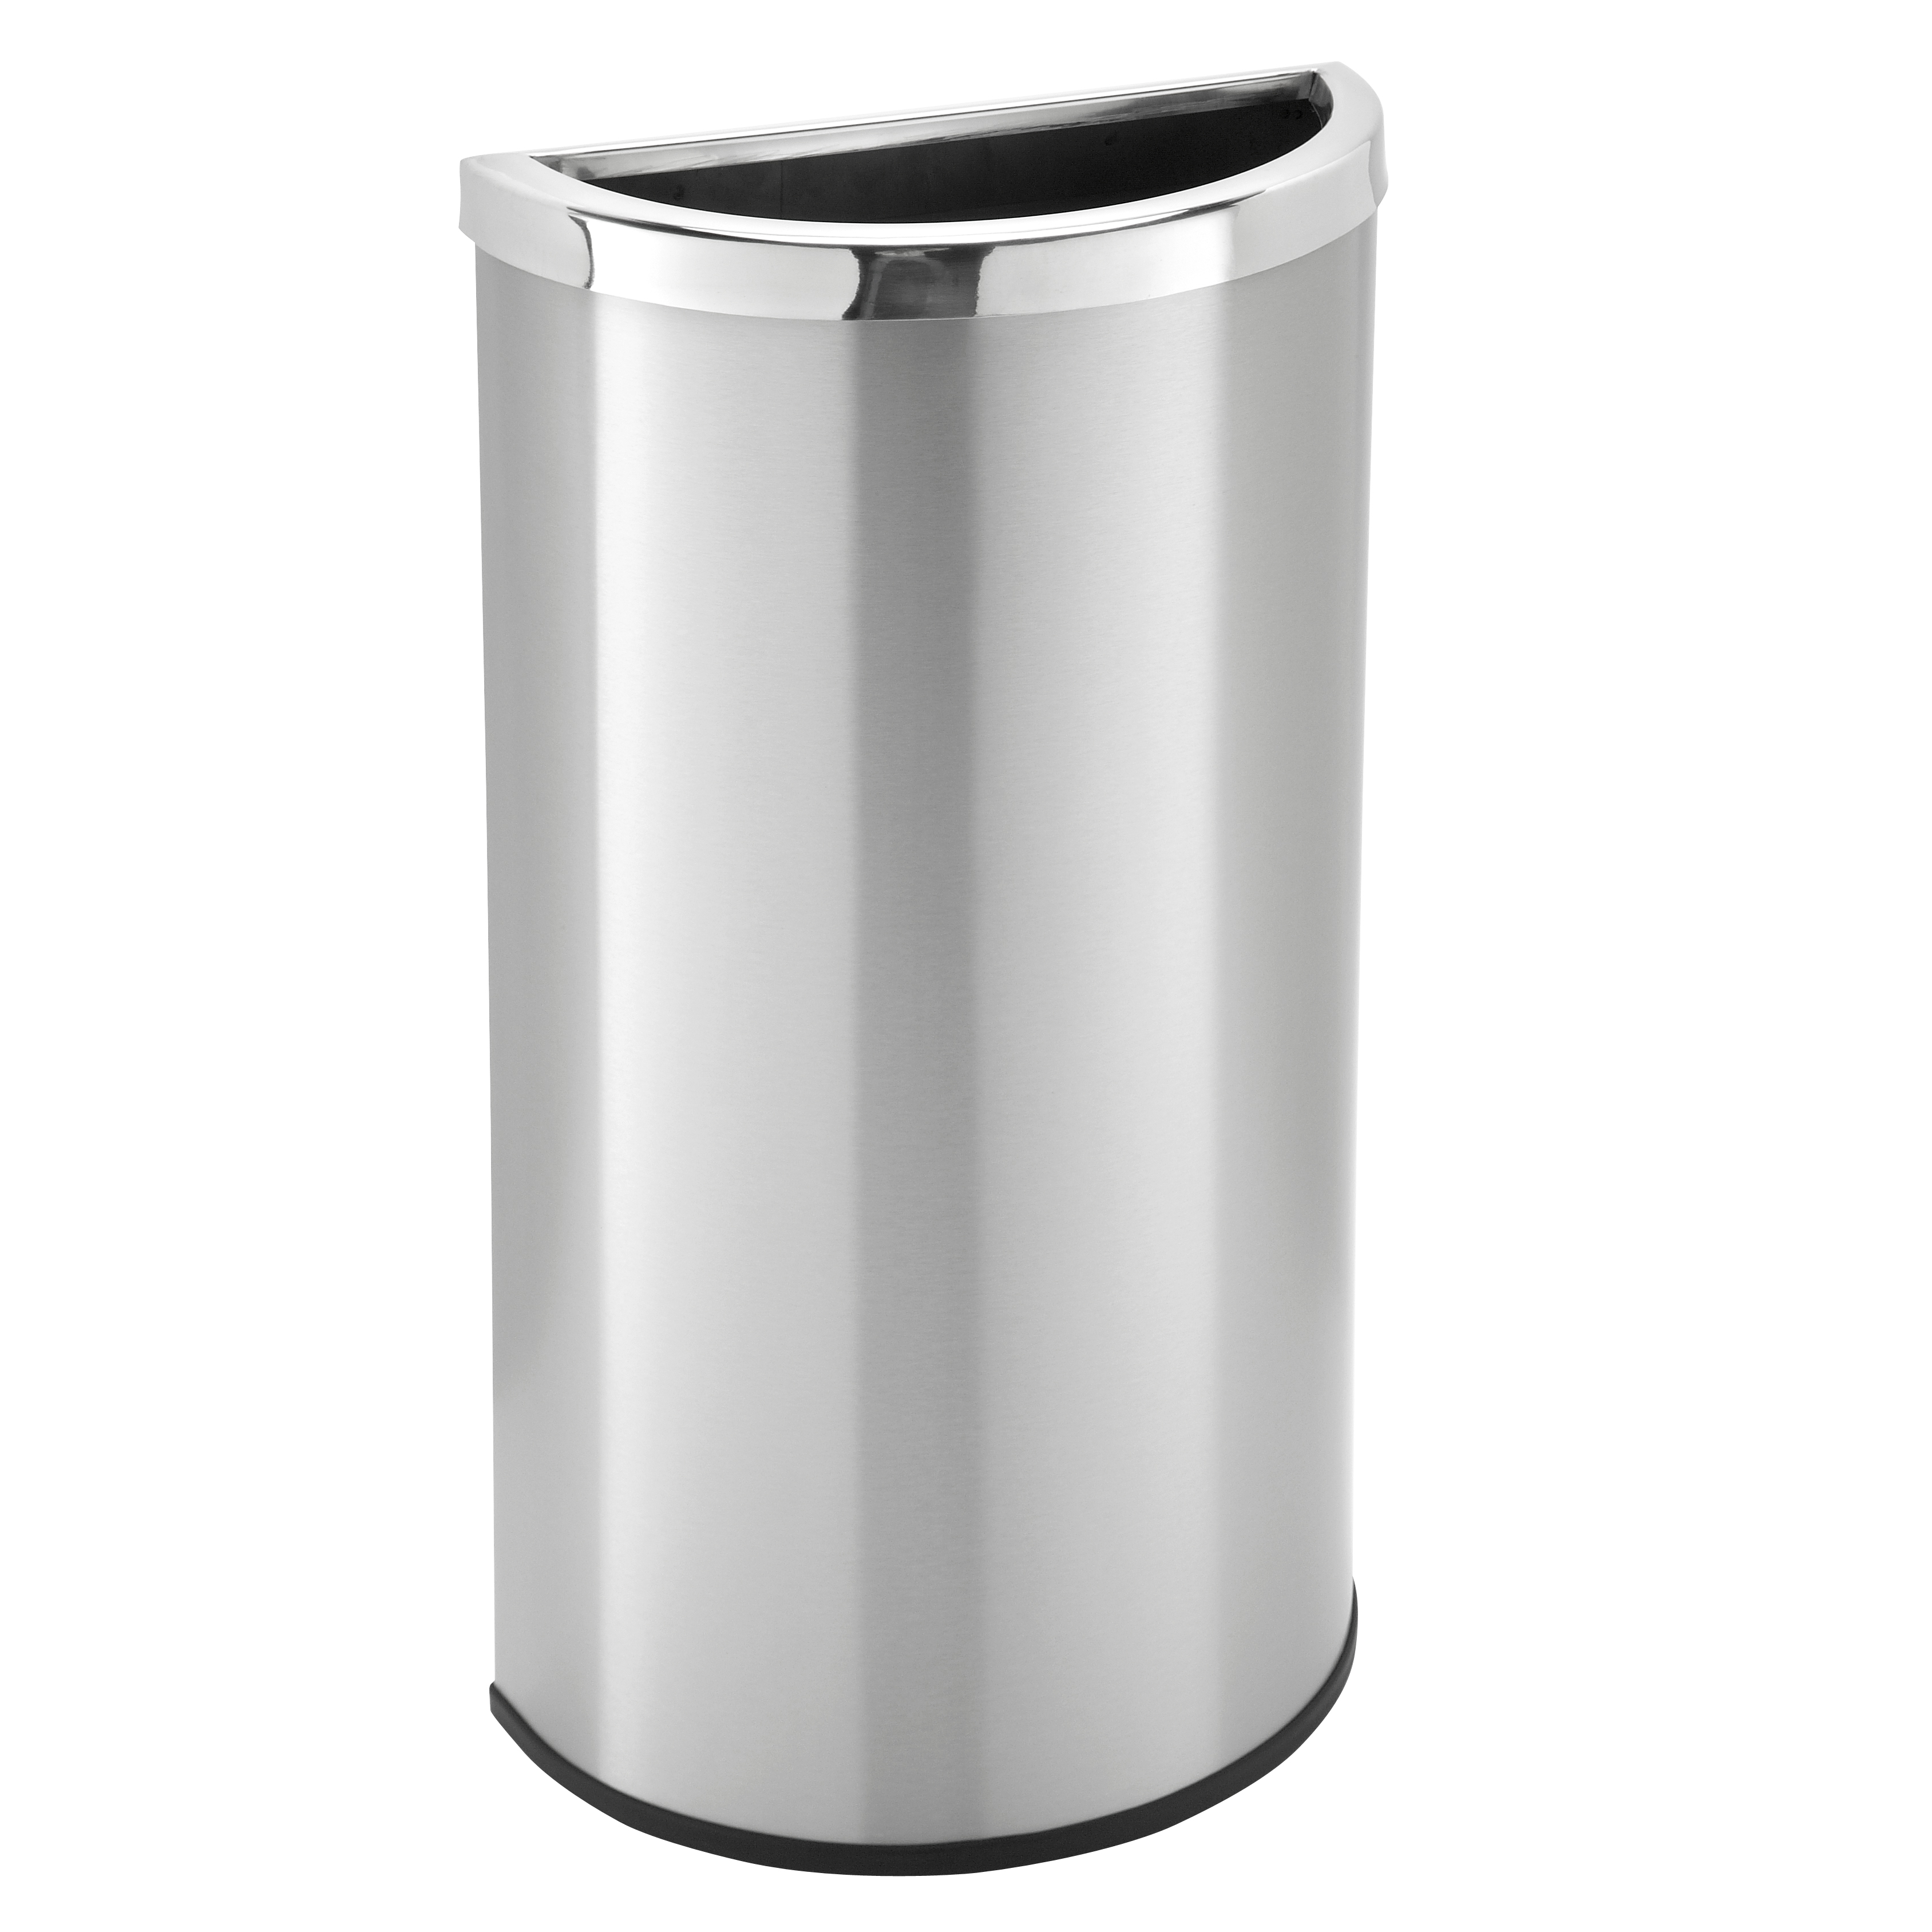 Rvs Vuilnisbak 8 Gallon Stainless Steel Half Round Garbage Can Trash